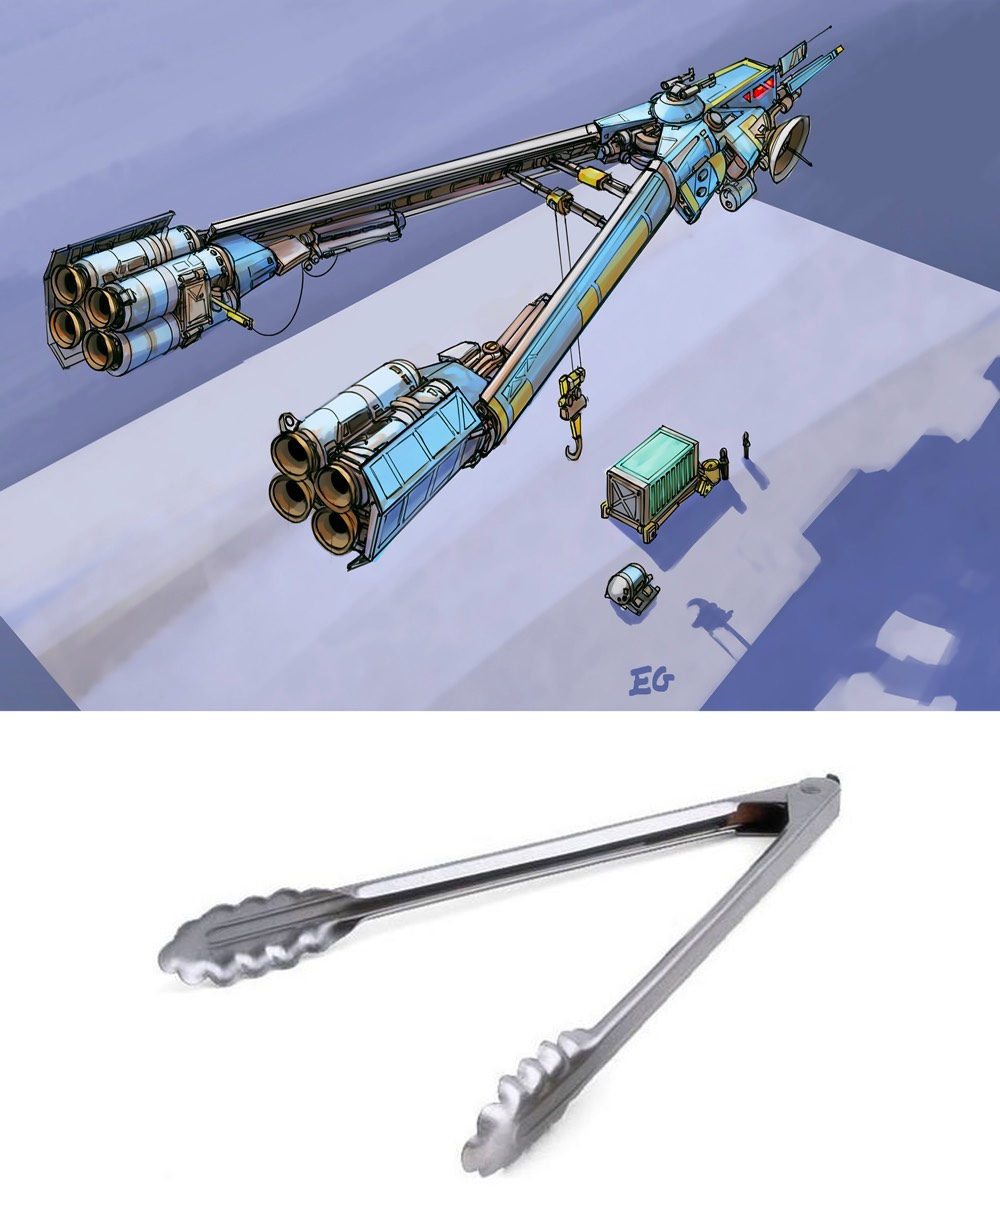 Sci Fi Spaceship Designs Inspired By Everyday Objects